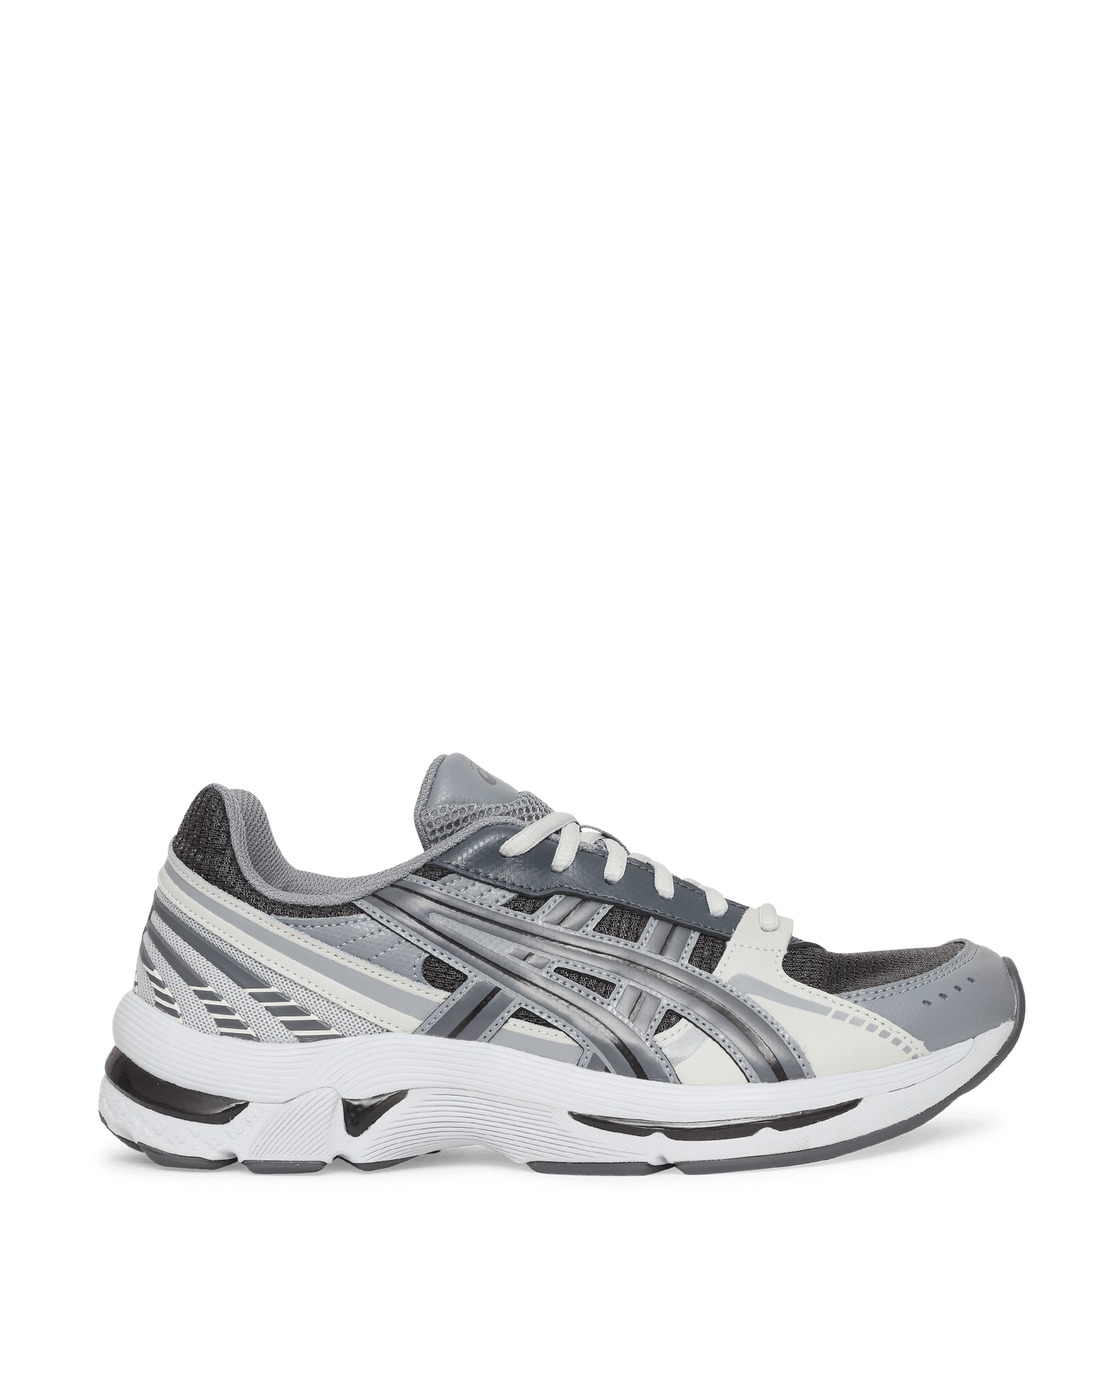 Asics Gel Kyrios Sneakers Black/Carrier Grey